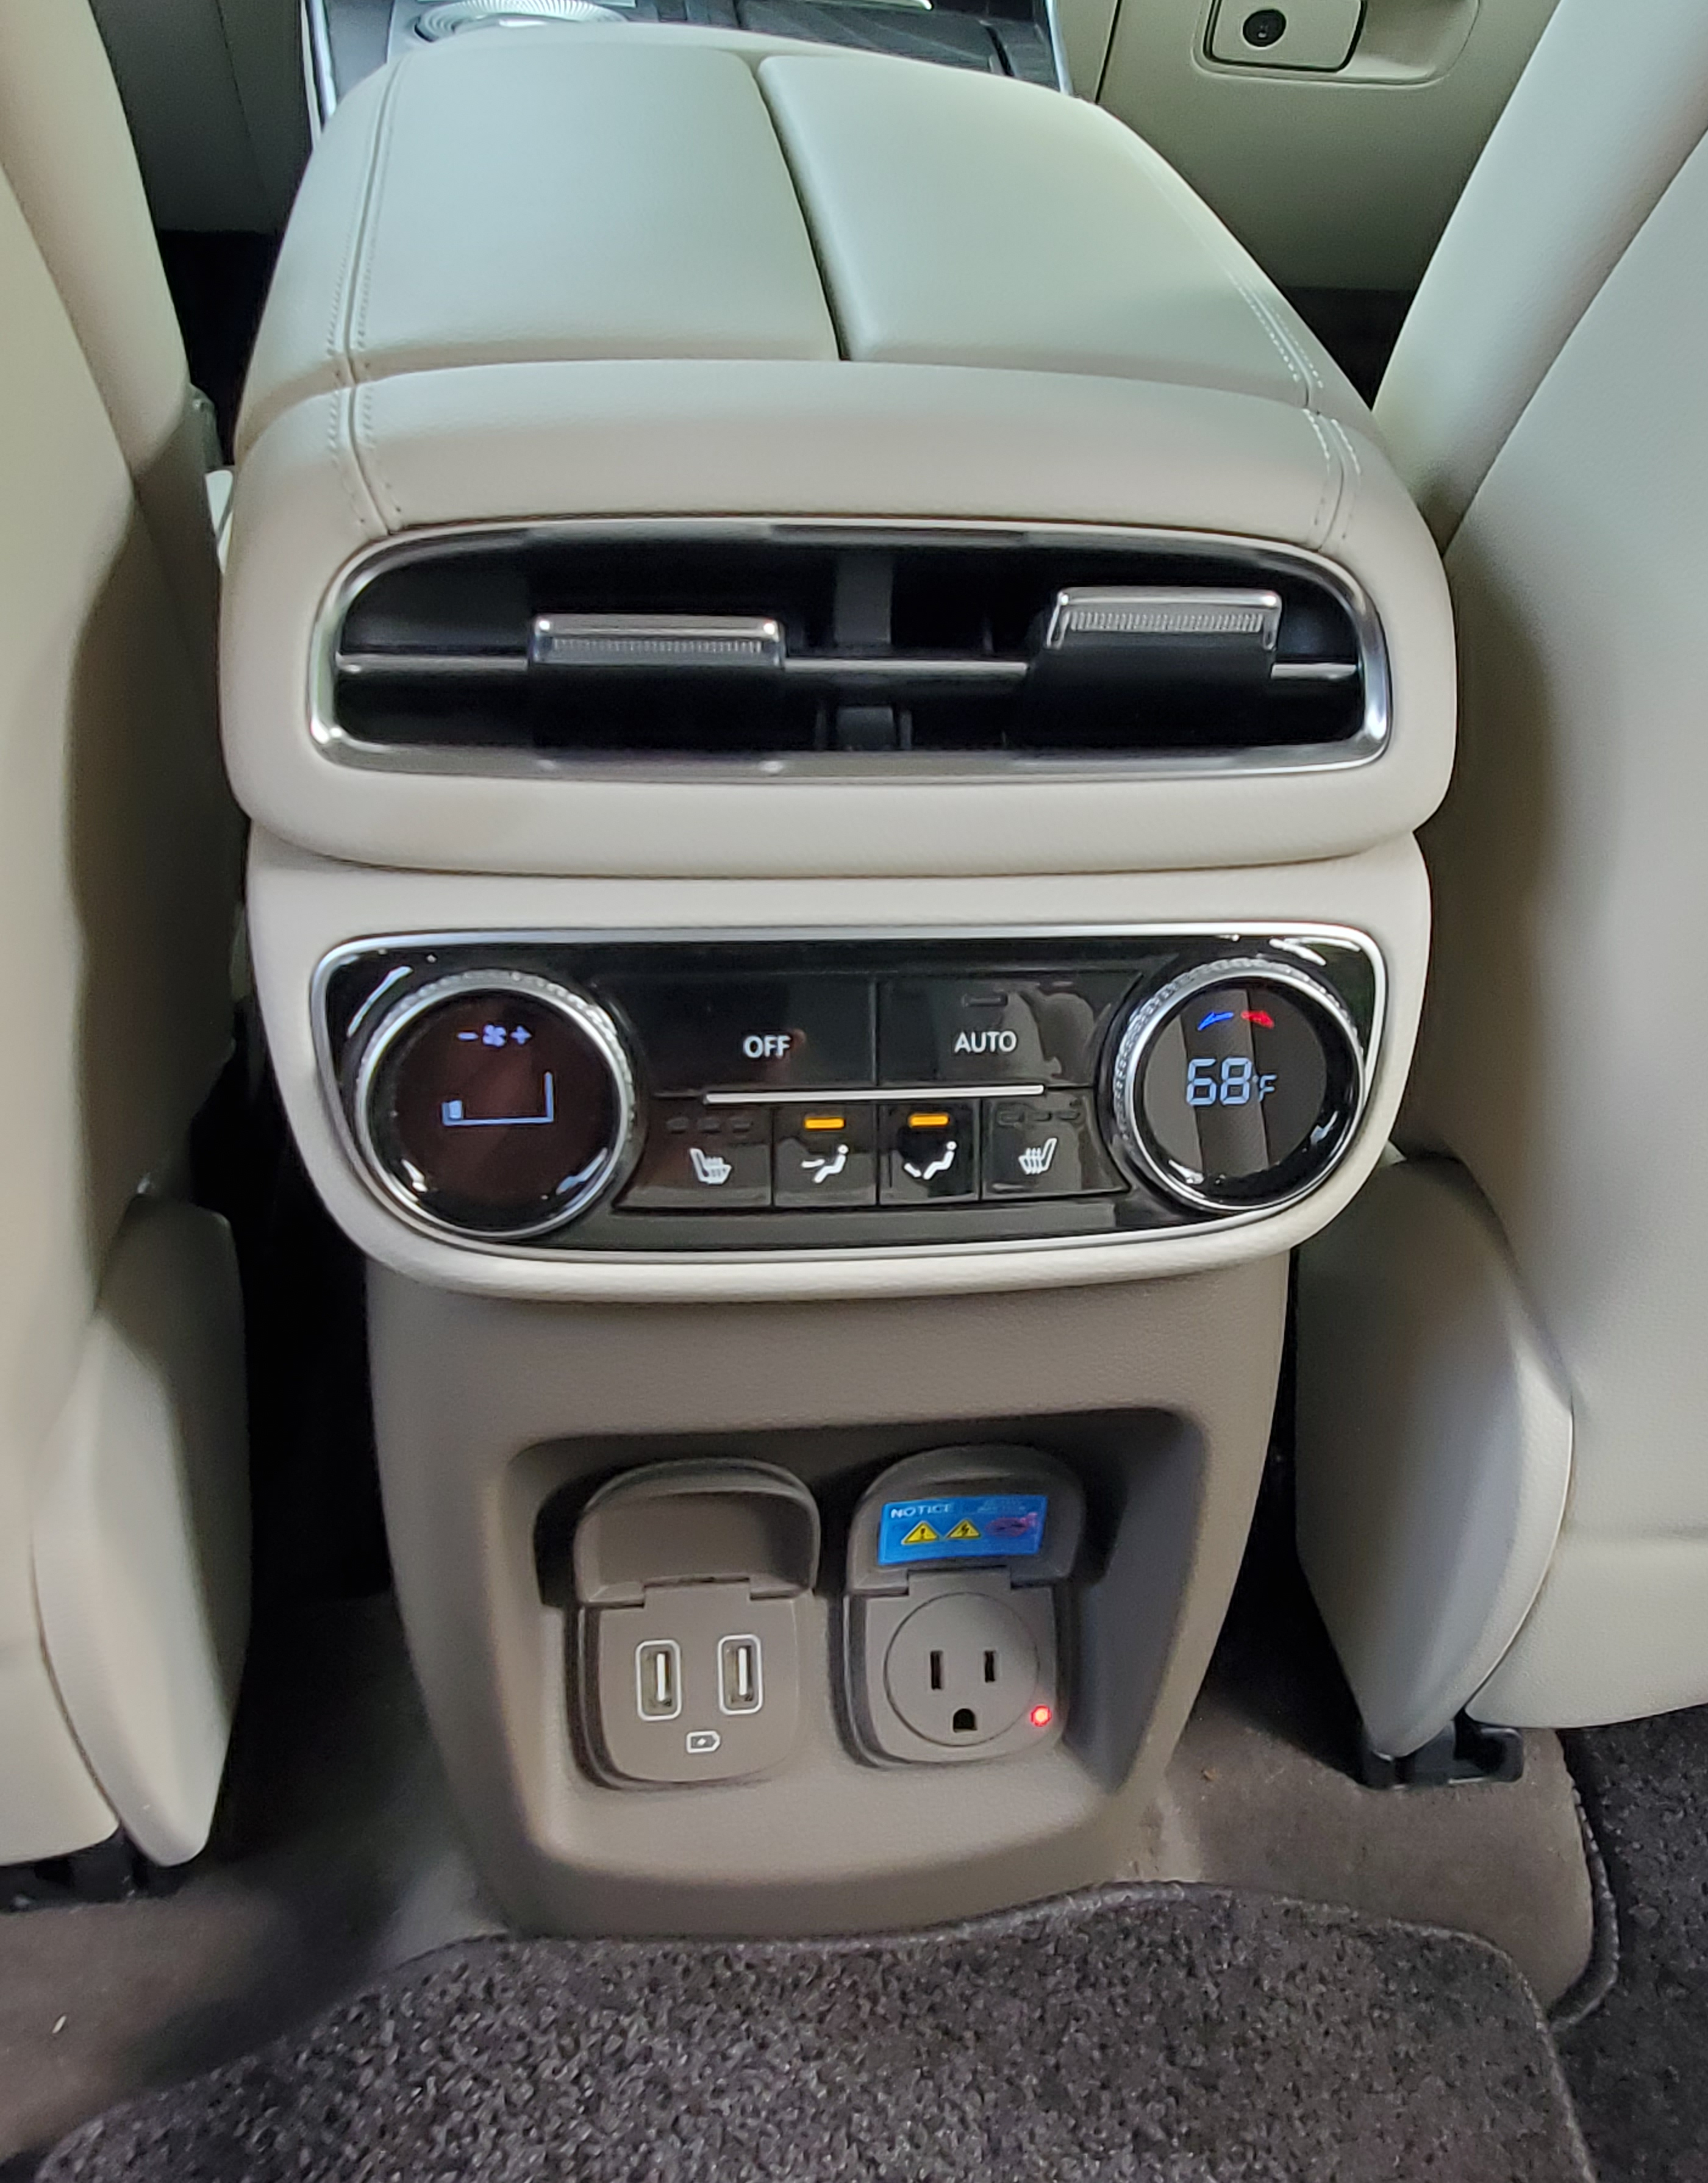 GV80 rear console with HVAC controls and power outlets